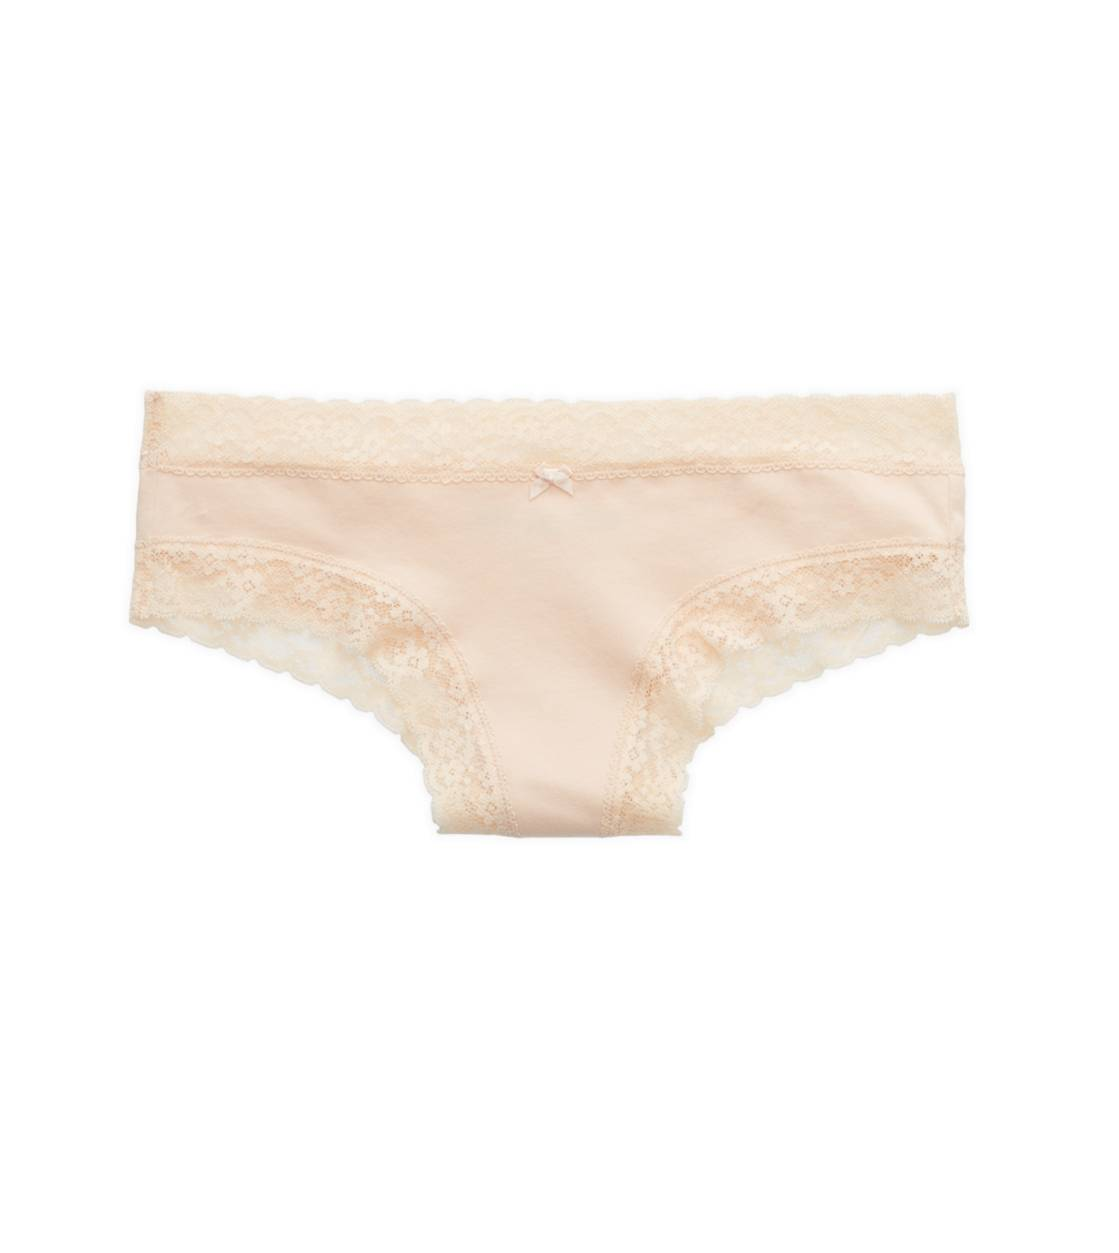 Buff Aerie Lace Trim Cheeky